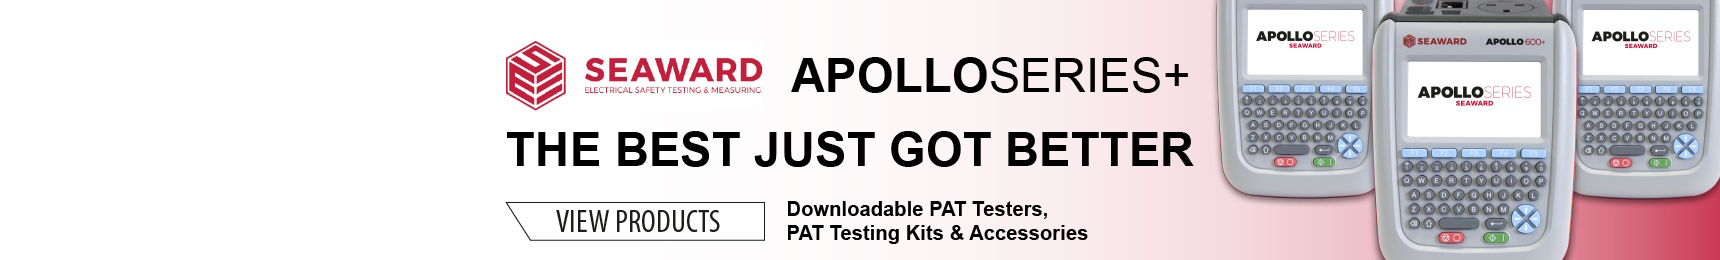 Seaward new apollo+ PAT Testers